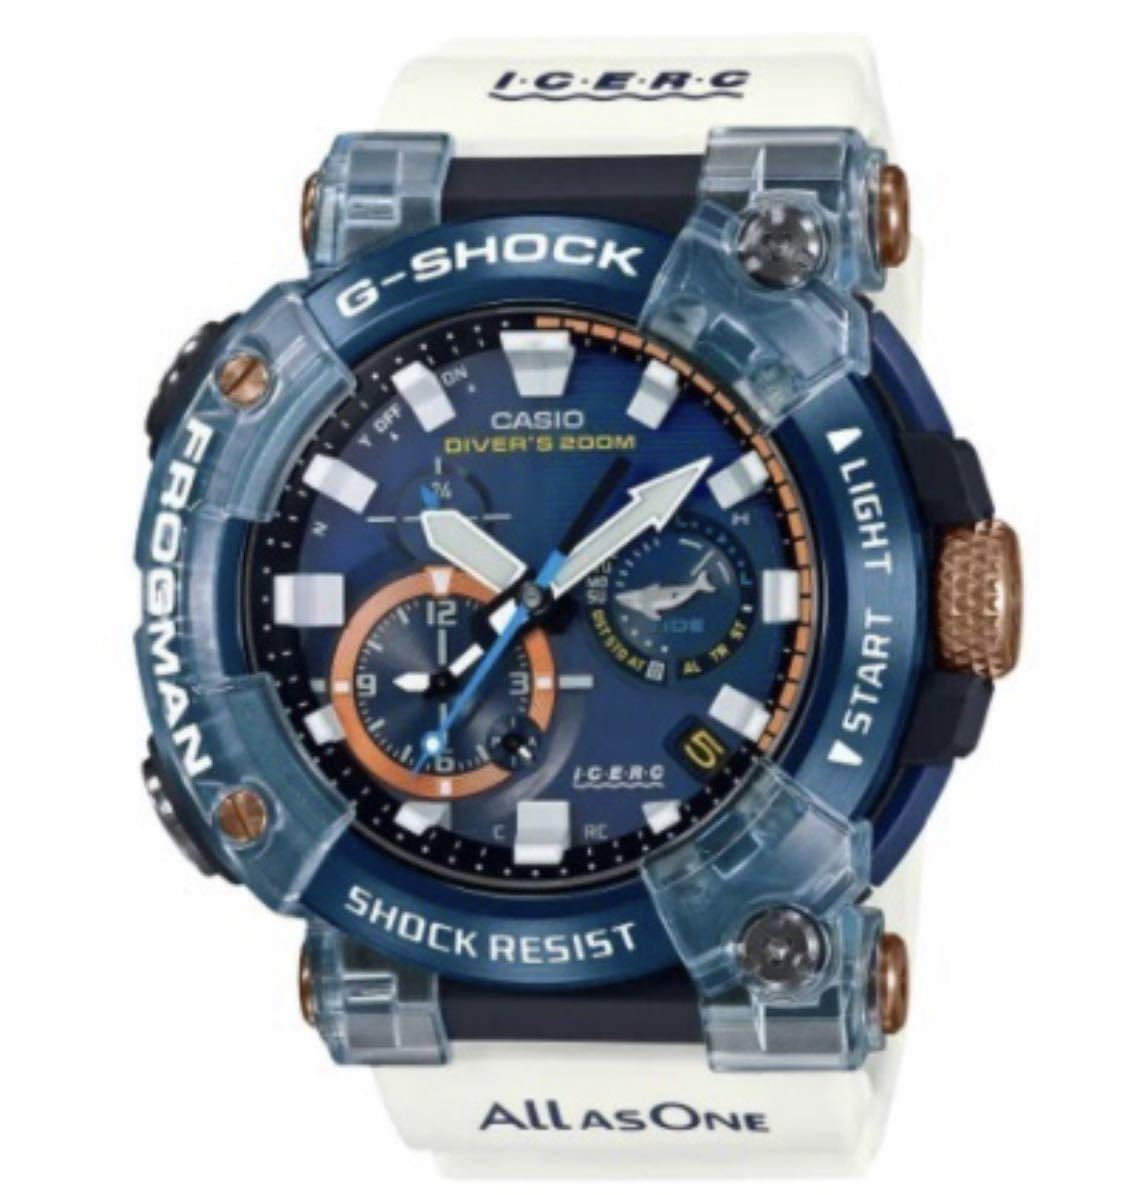 CASIO G-SHOCK GWF-A1000K-2AJR [ISO200m潜水用防水 FROGMAN Love The Sea And The Earth イルカクジラモデル] ②